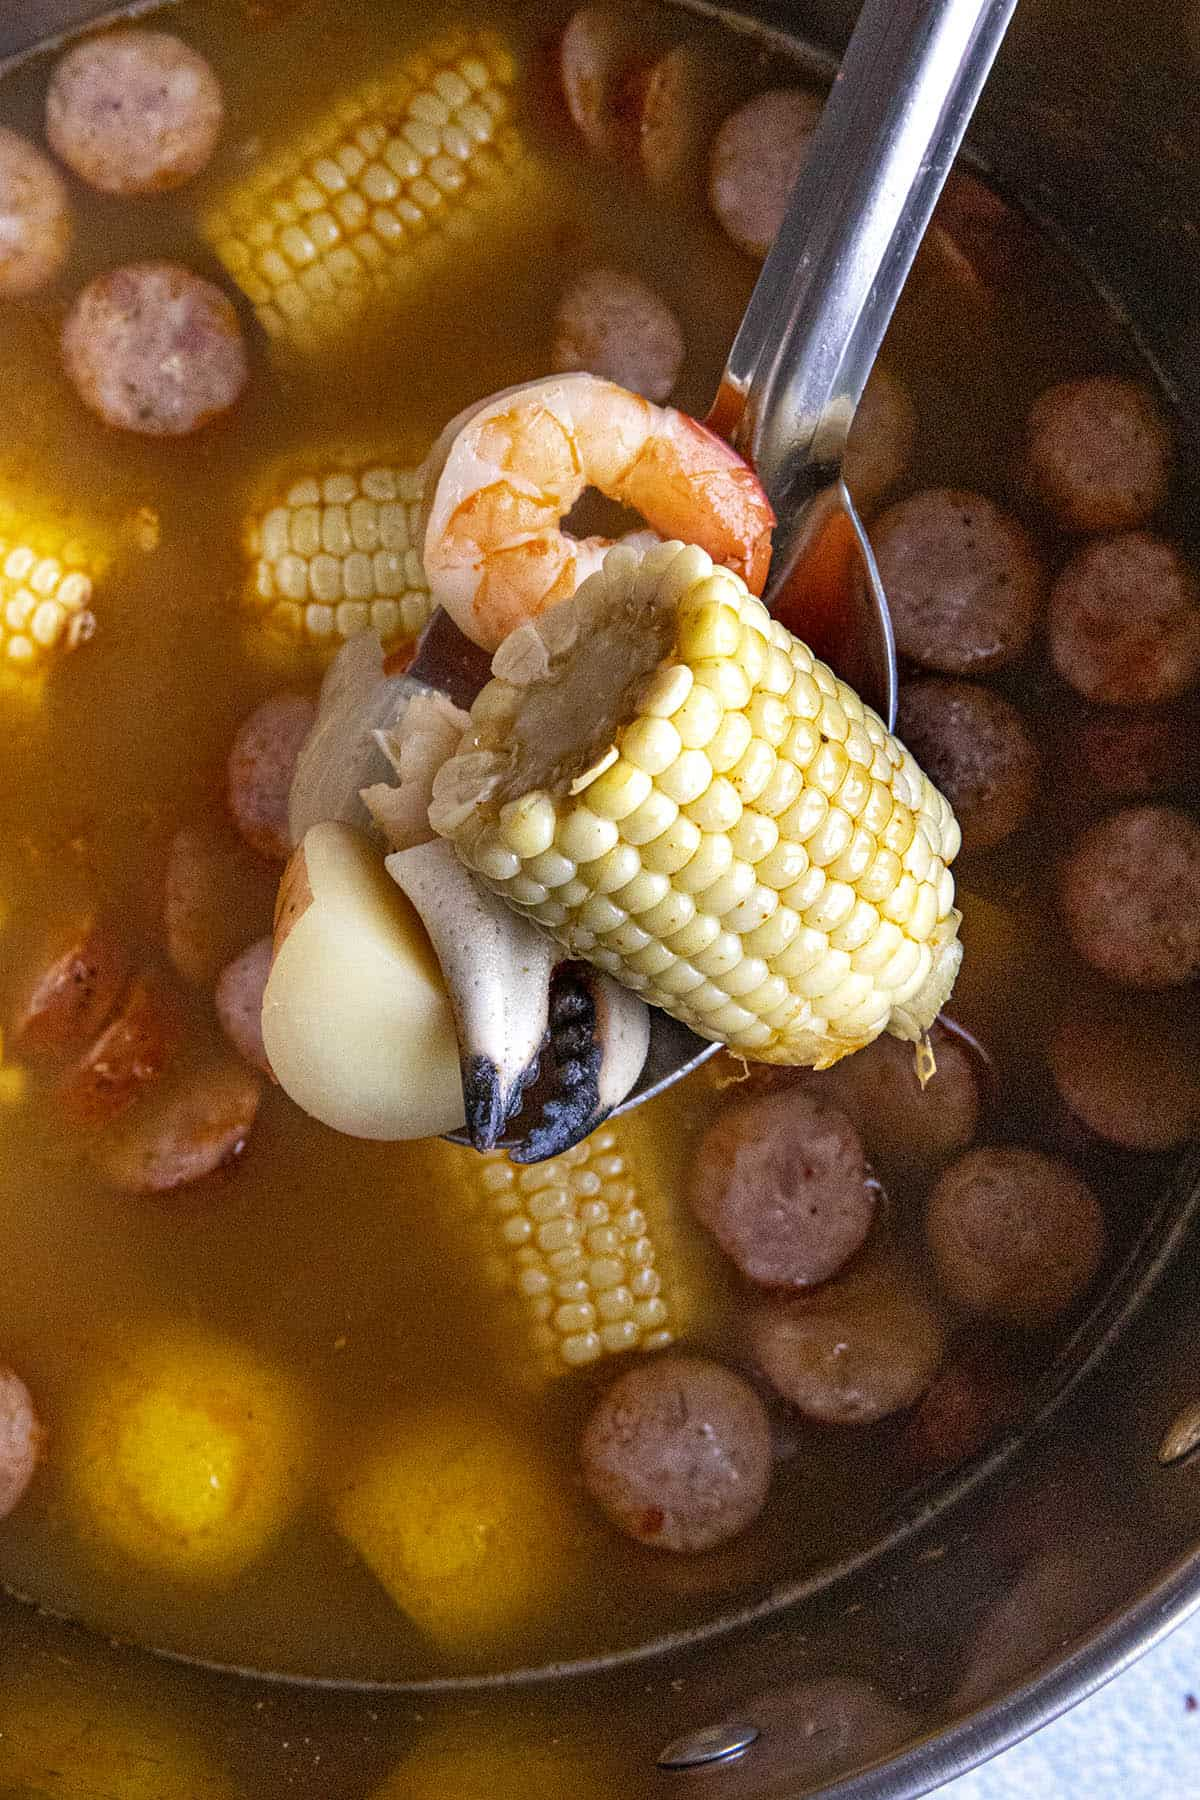 A big scoop of seafood, corn and andouille from my pot of low country boil